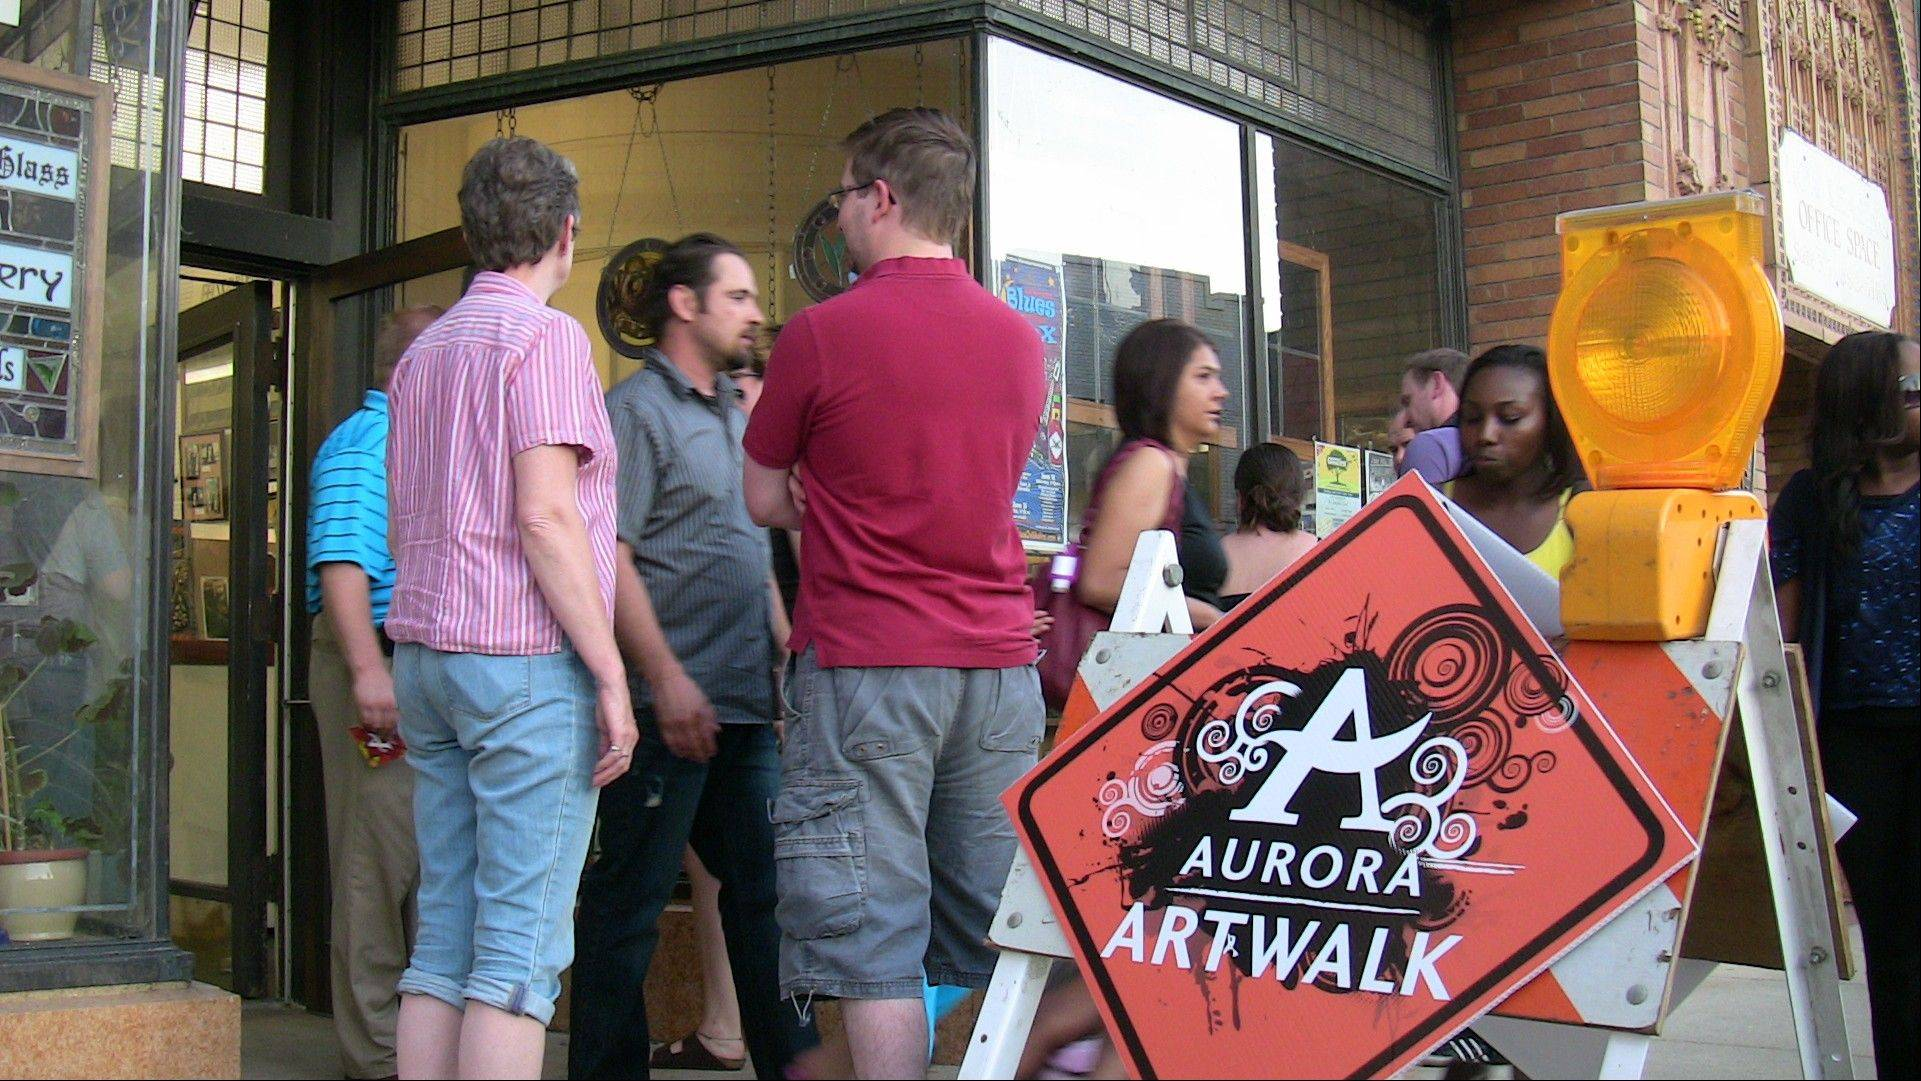 Fire-eater to heat up Aurora ArtWalk